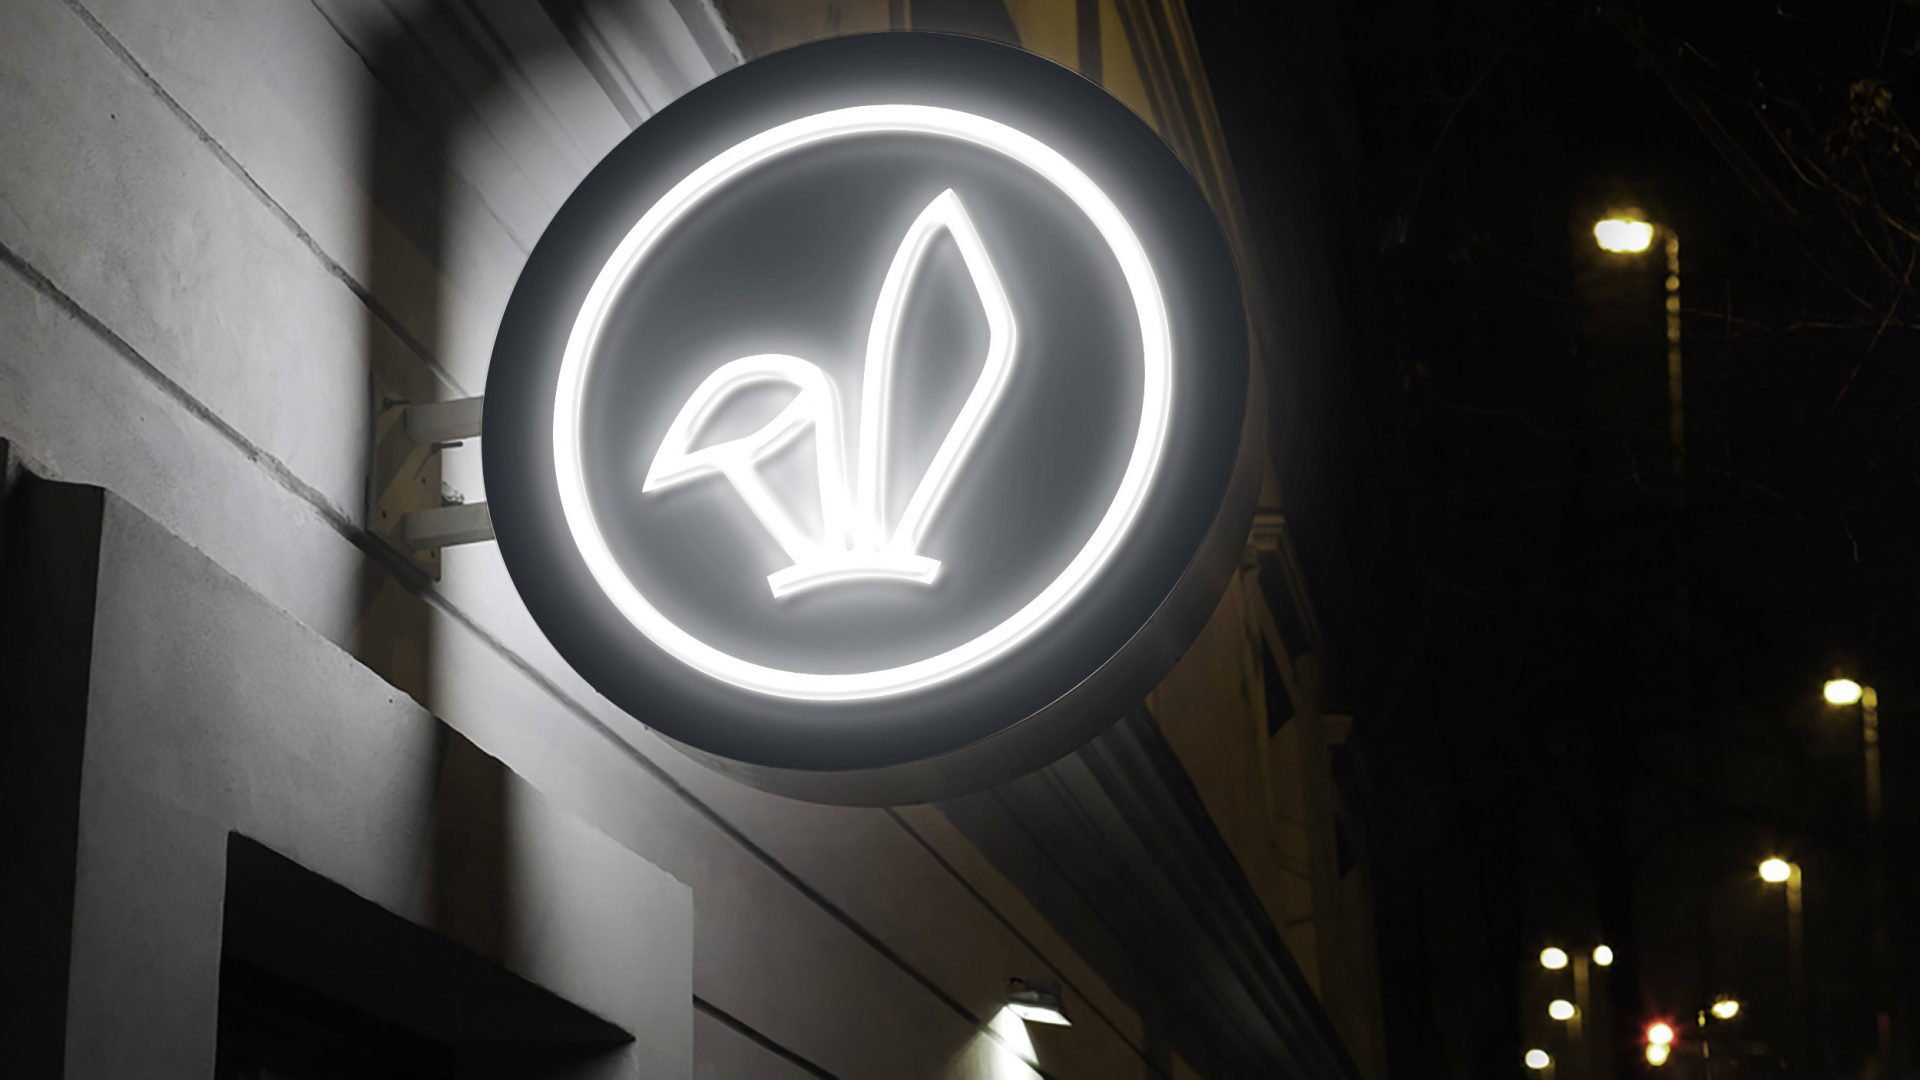 Brand identity design by Crate47. The Bunny bubble tea logo marque used on a circular white neon sign.